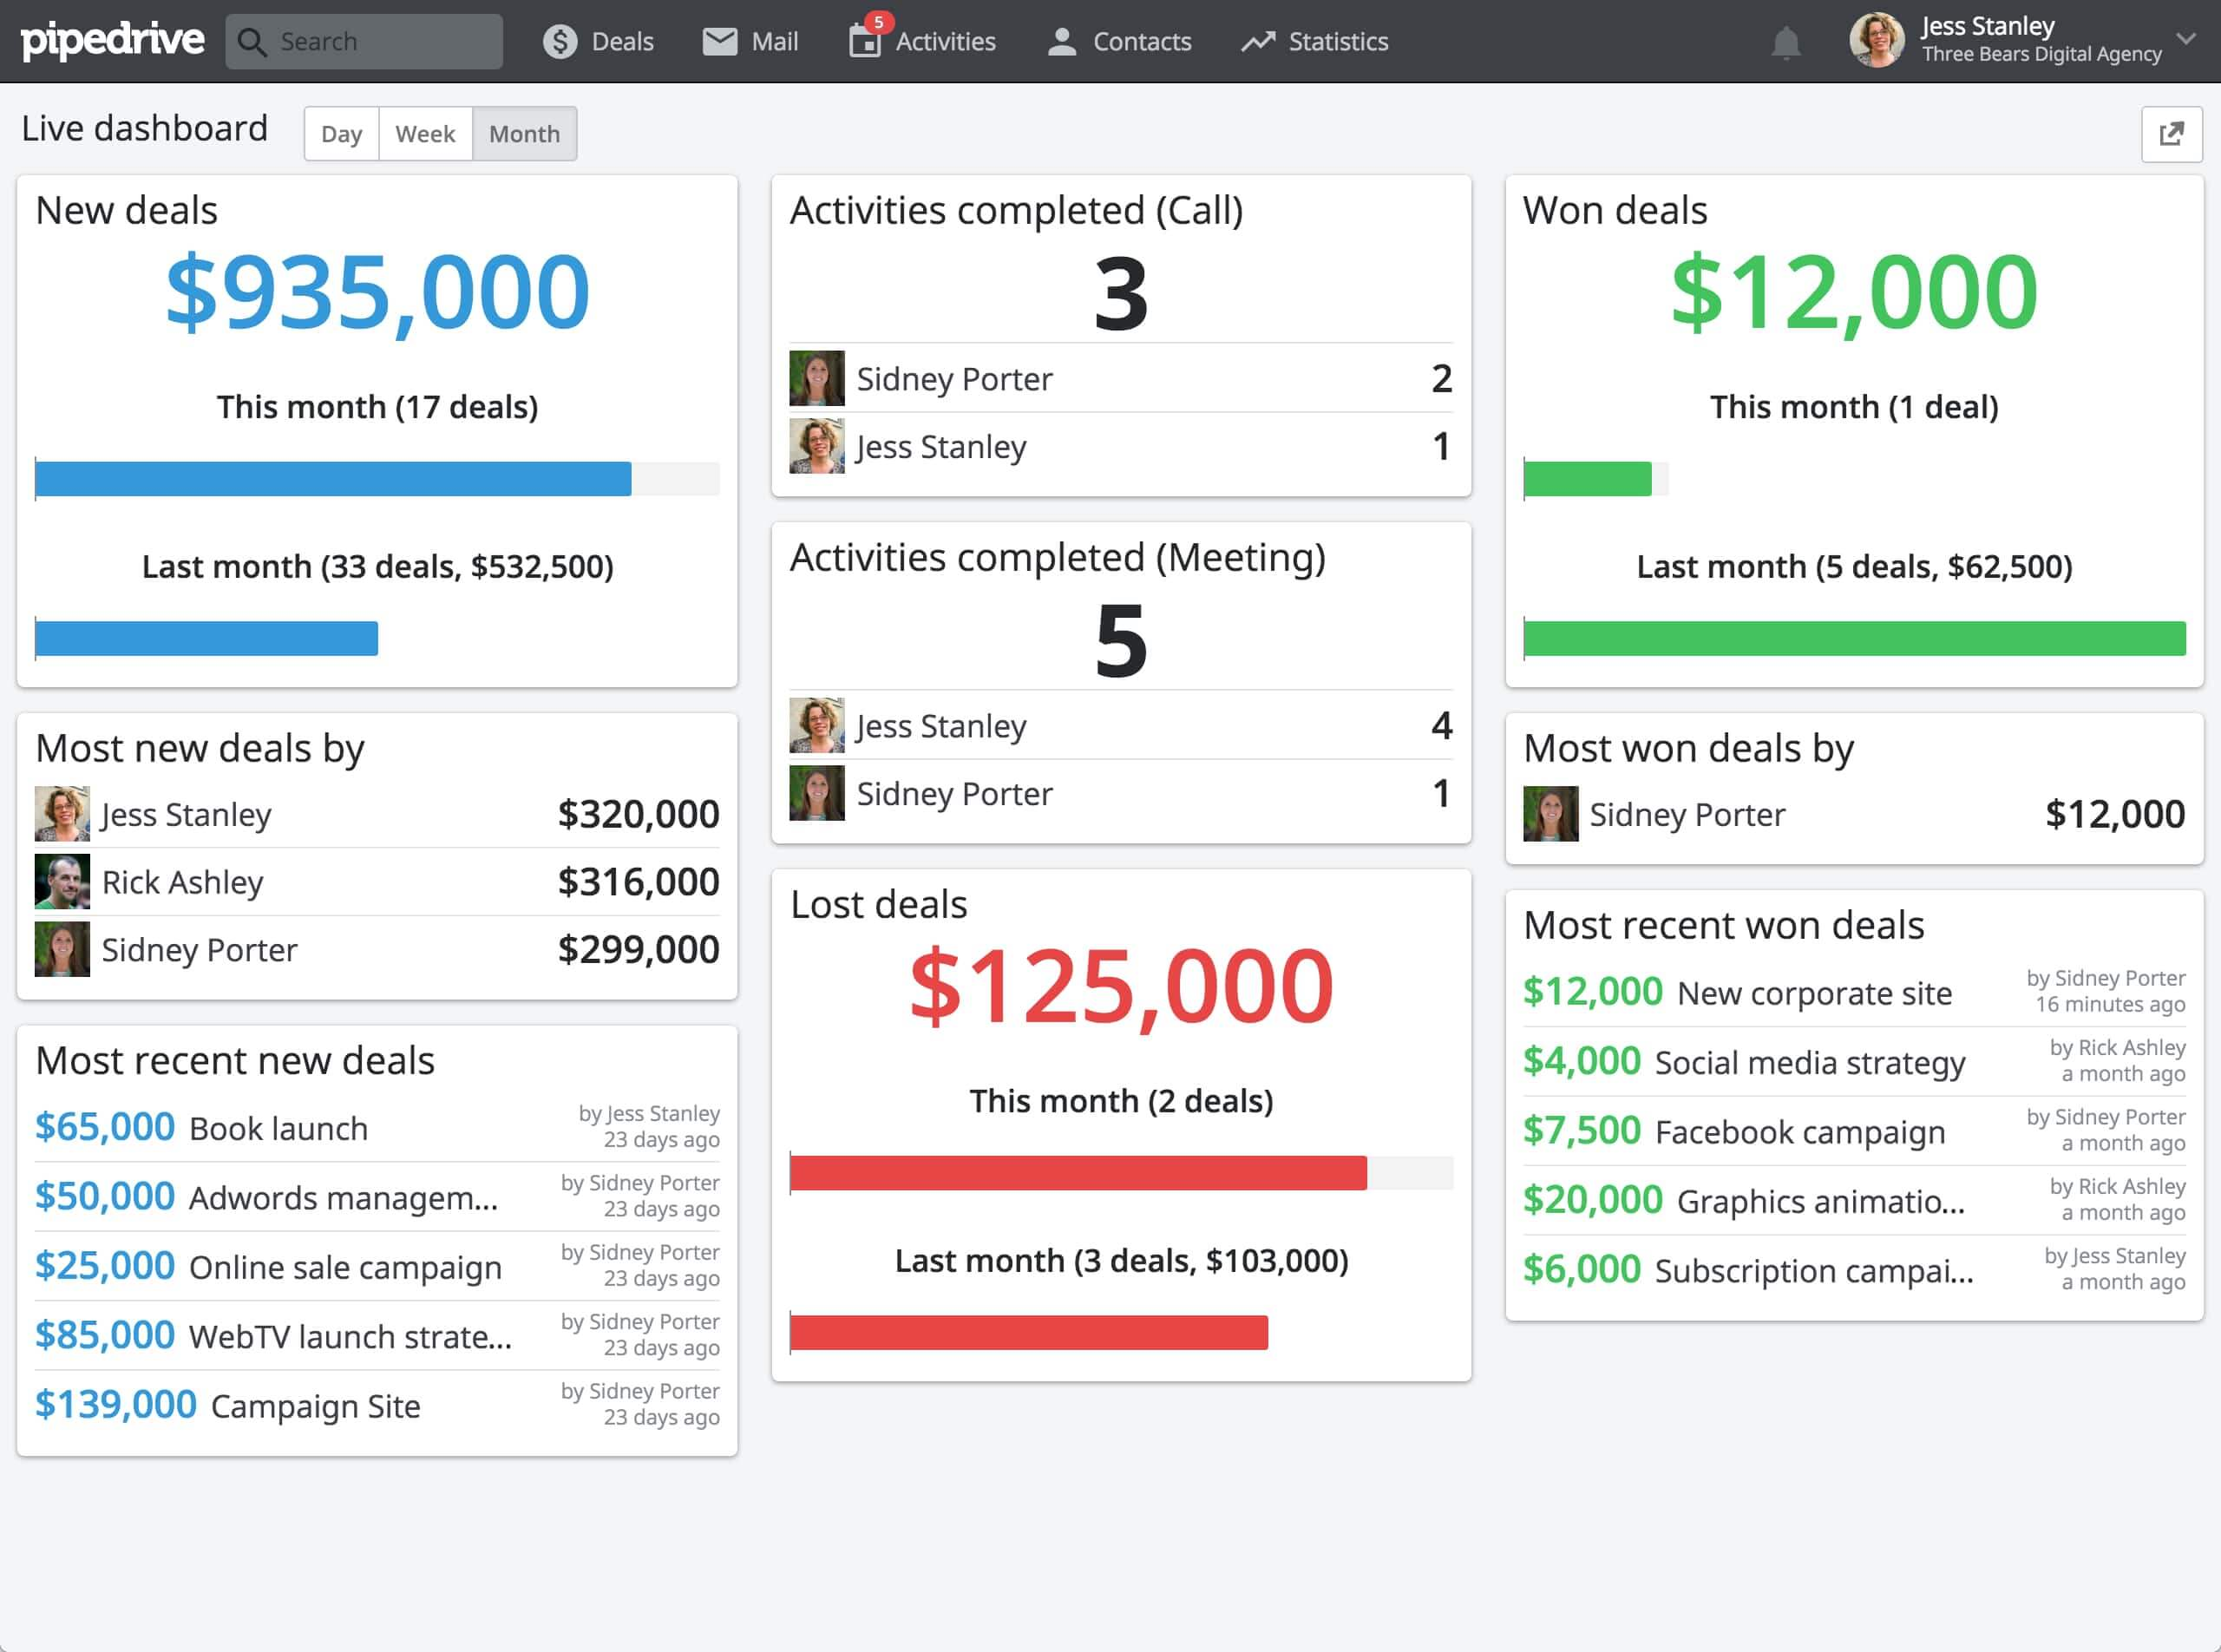 Live-Dashboards-in-Pipedrive-real-estate-CRM